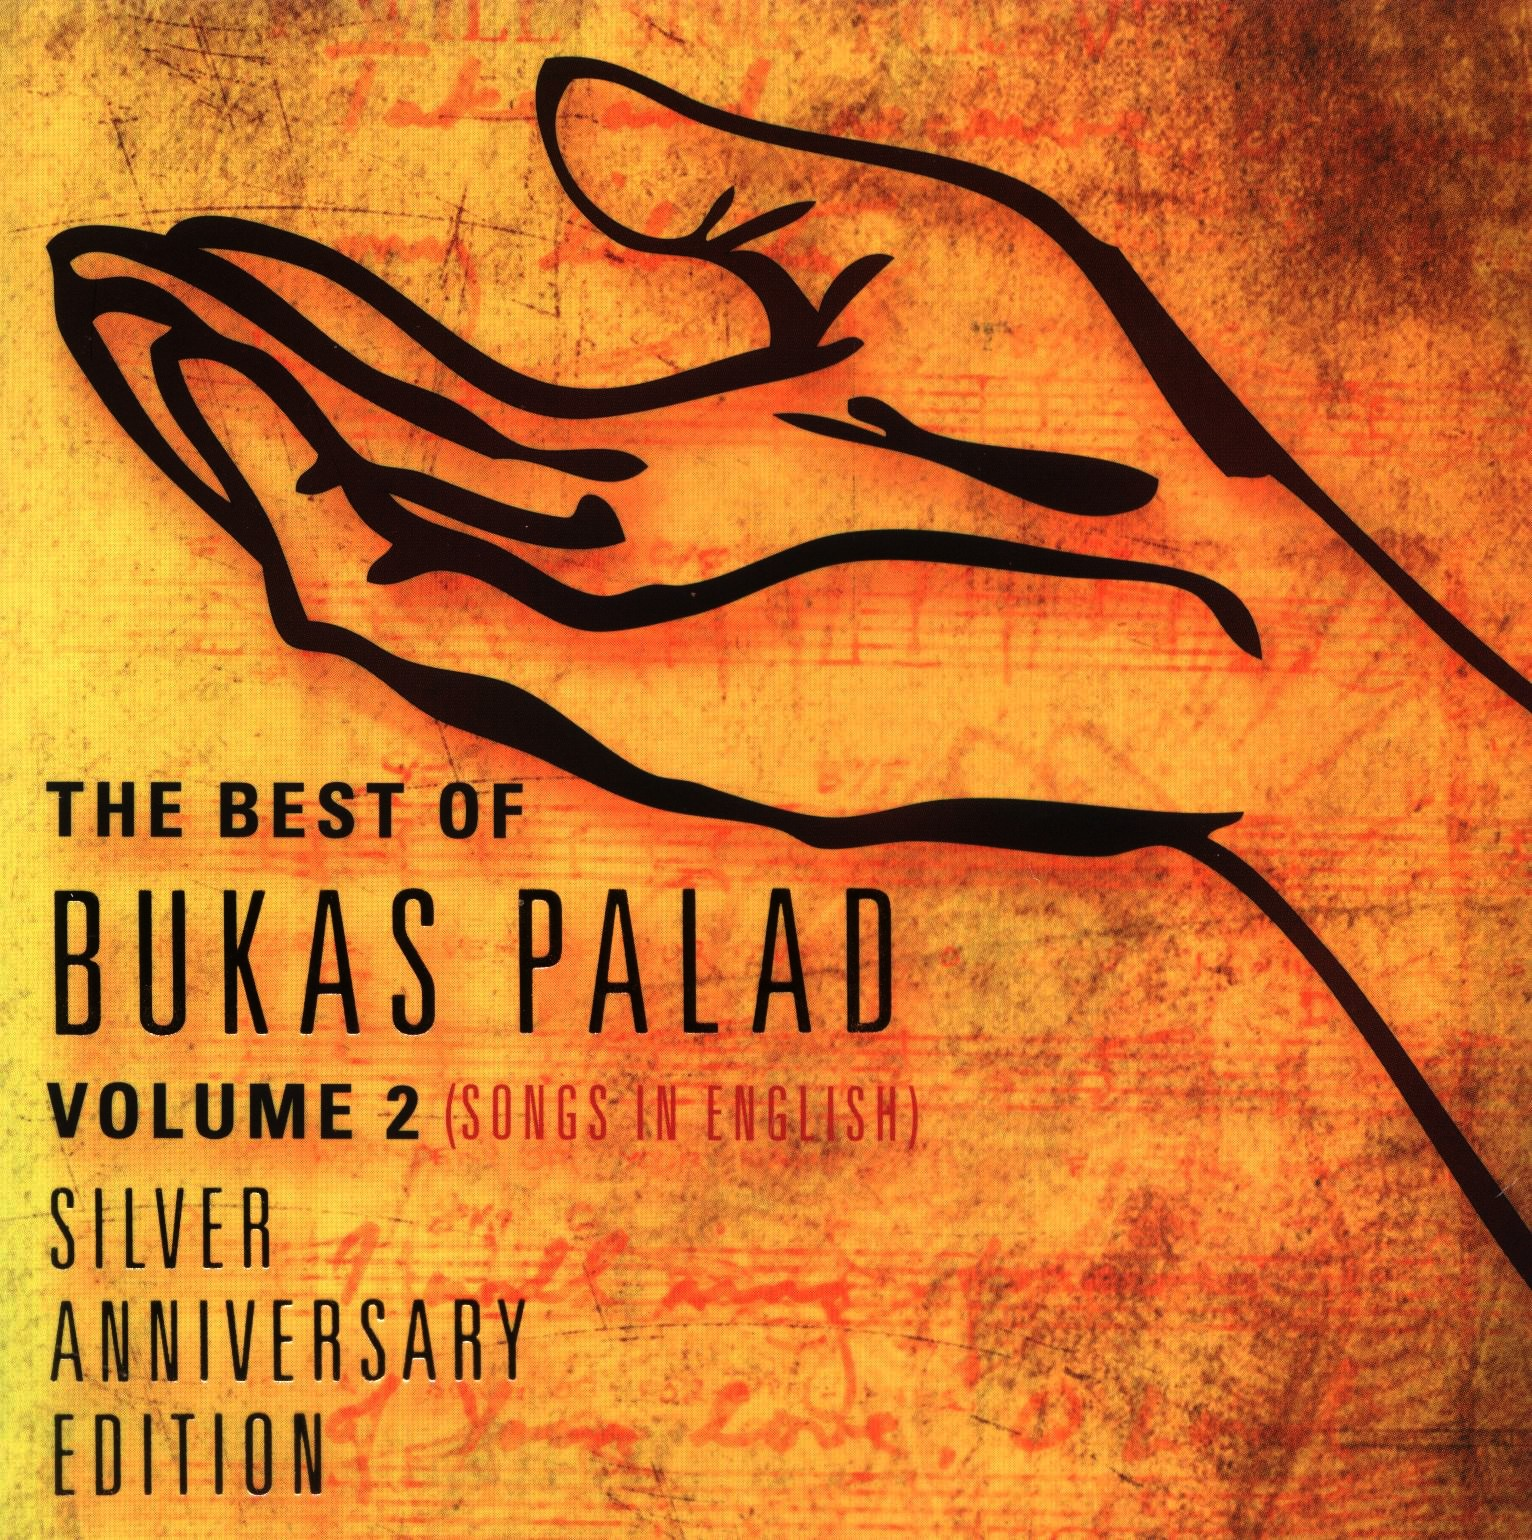 The Best of Bukas Palad Vol. 2, Silver Anniversary Edition